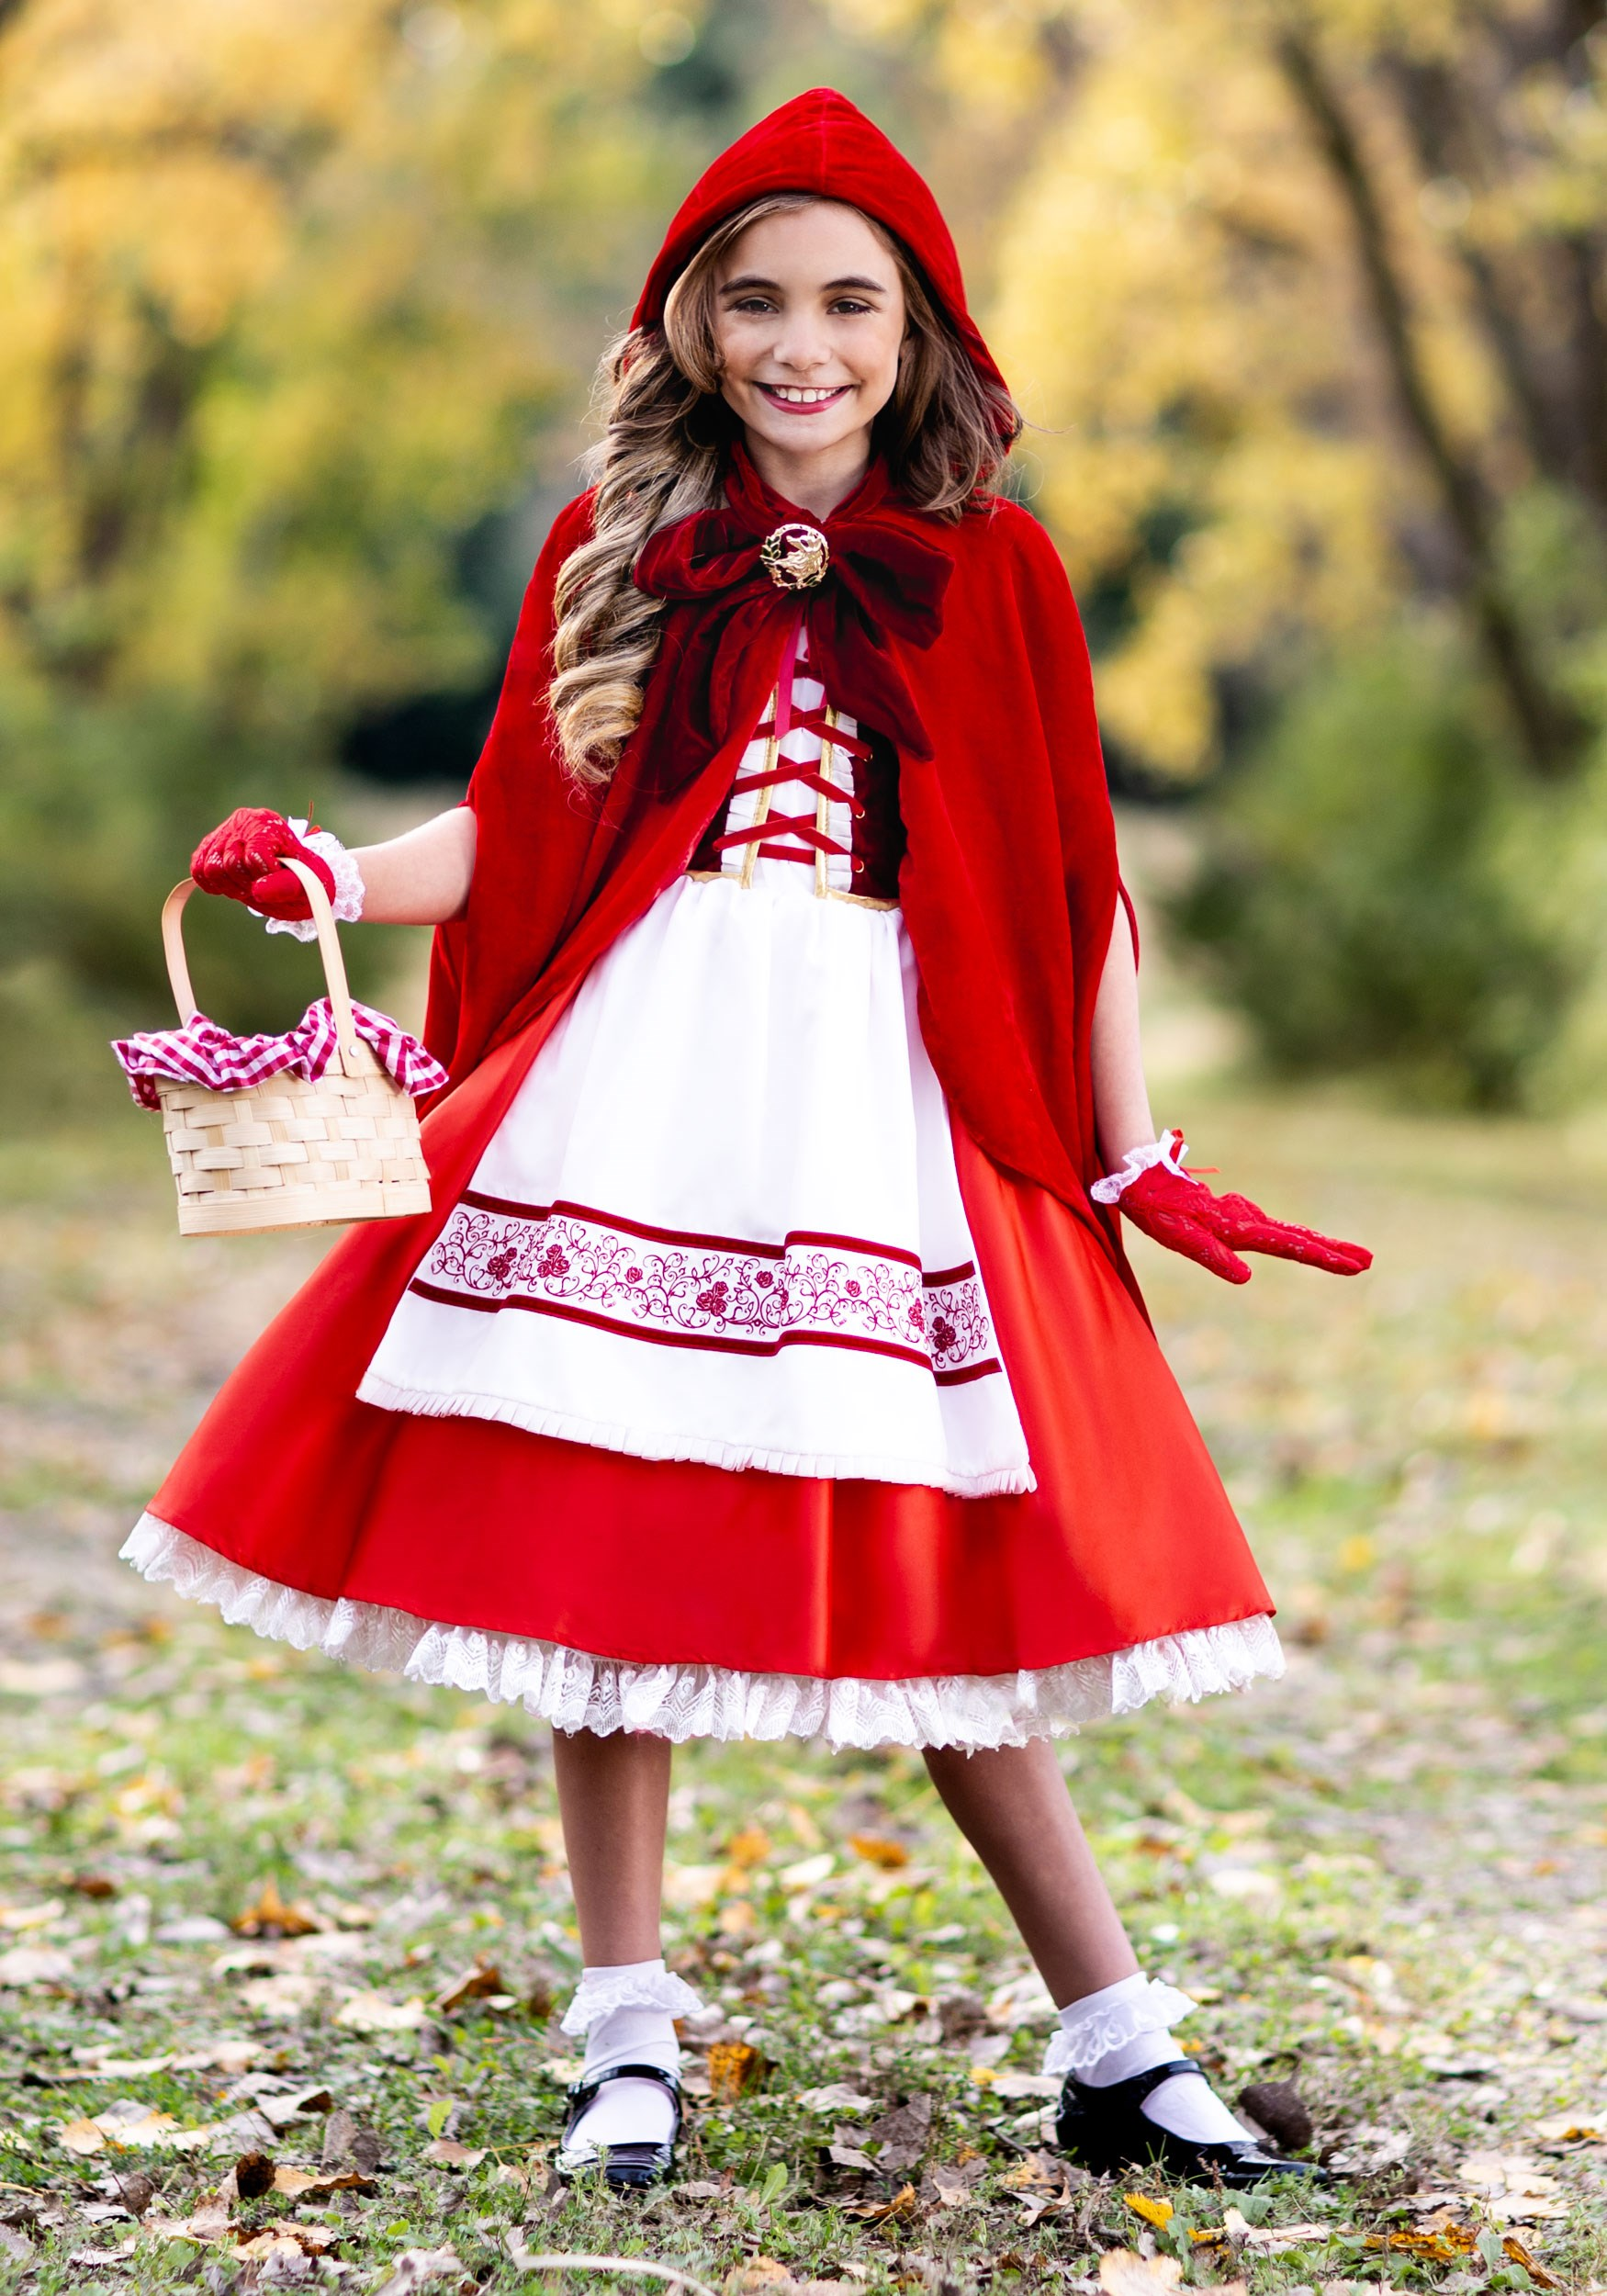 Premium Realistic Girls Red Riding Hood Costume